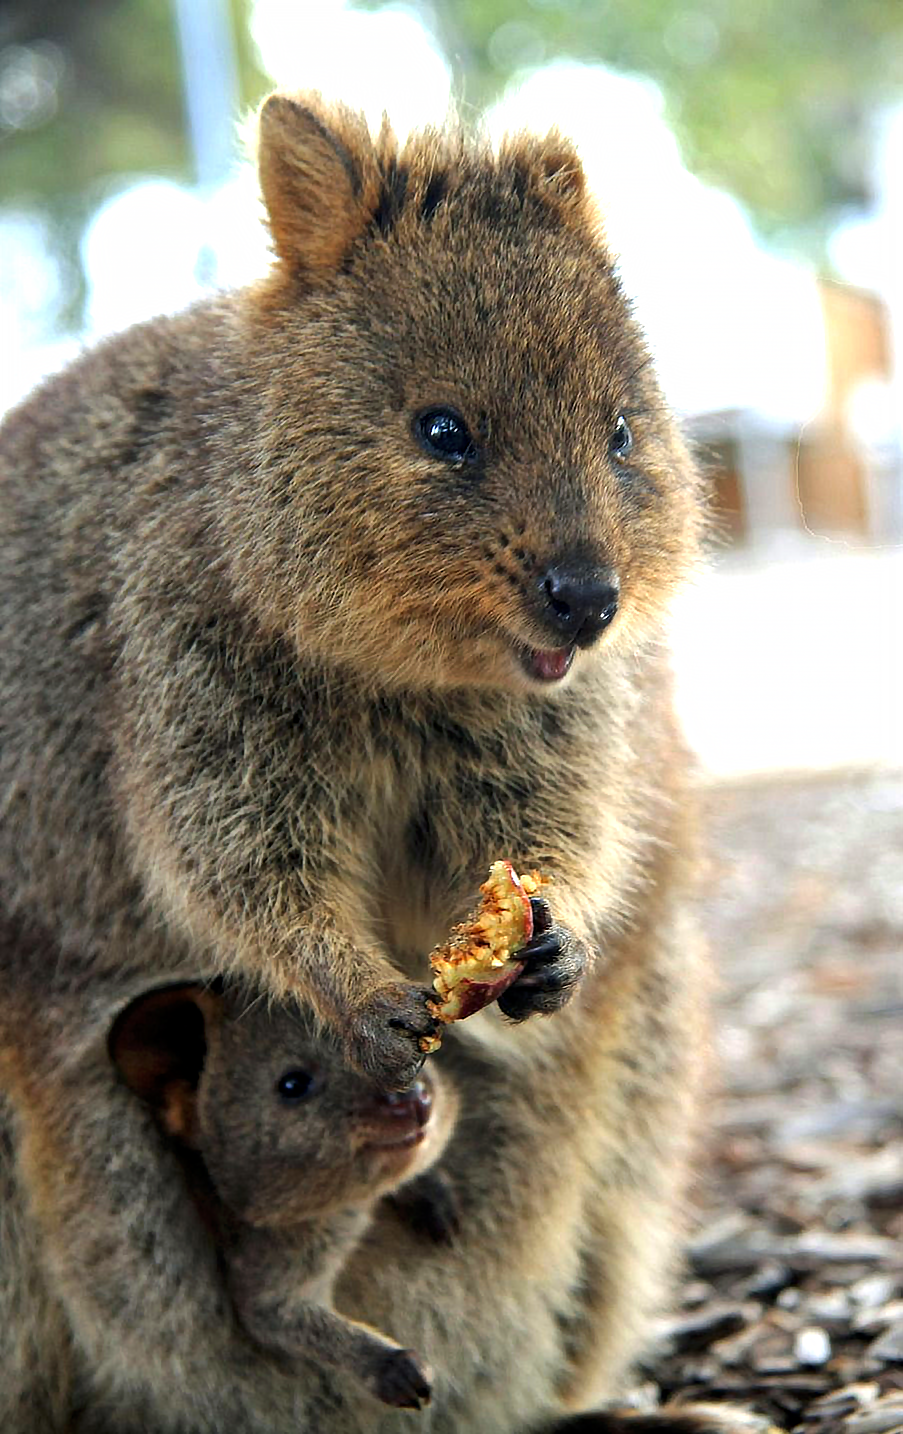 Baby quokkas will live in the safety of their mother's